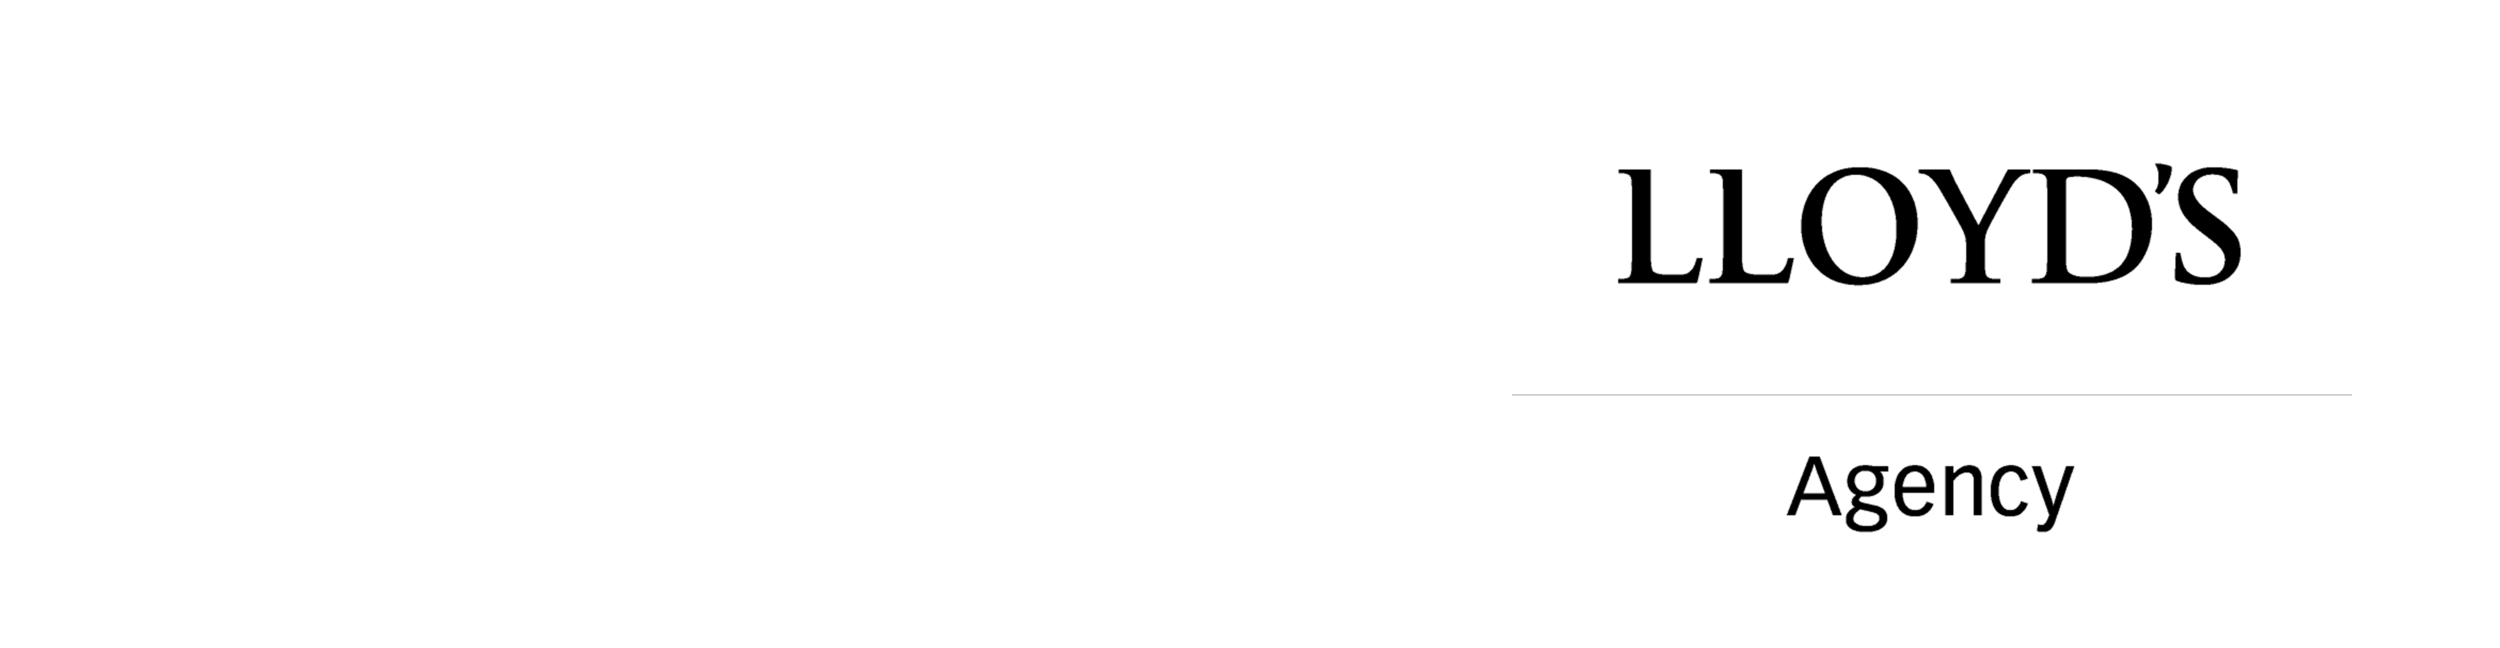 ASM Logo 2015 white next to each other.png